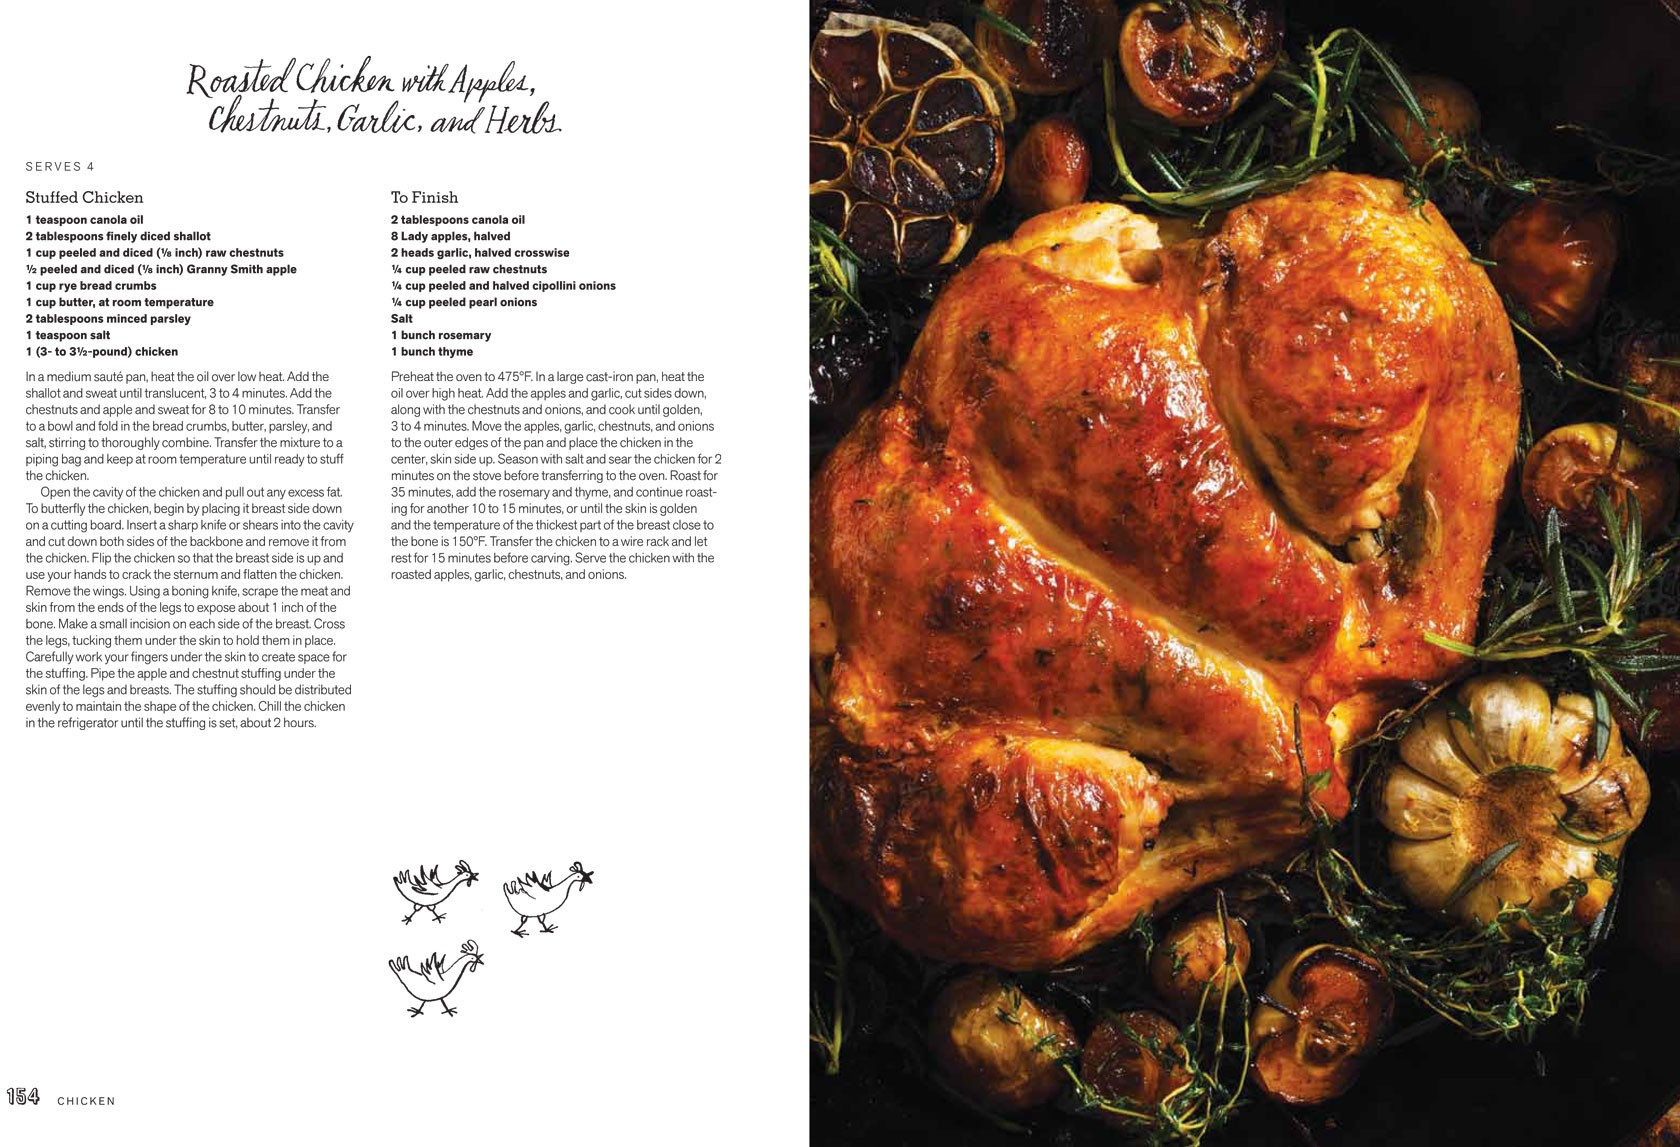 Roasted-Chicken-with-Apples,-Chestnuts,-Garlic,-and-Herbs